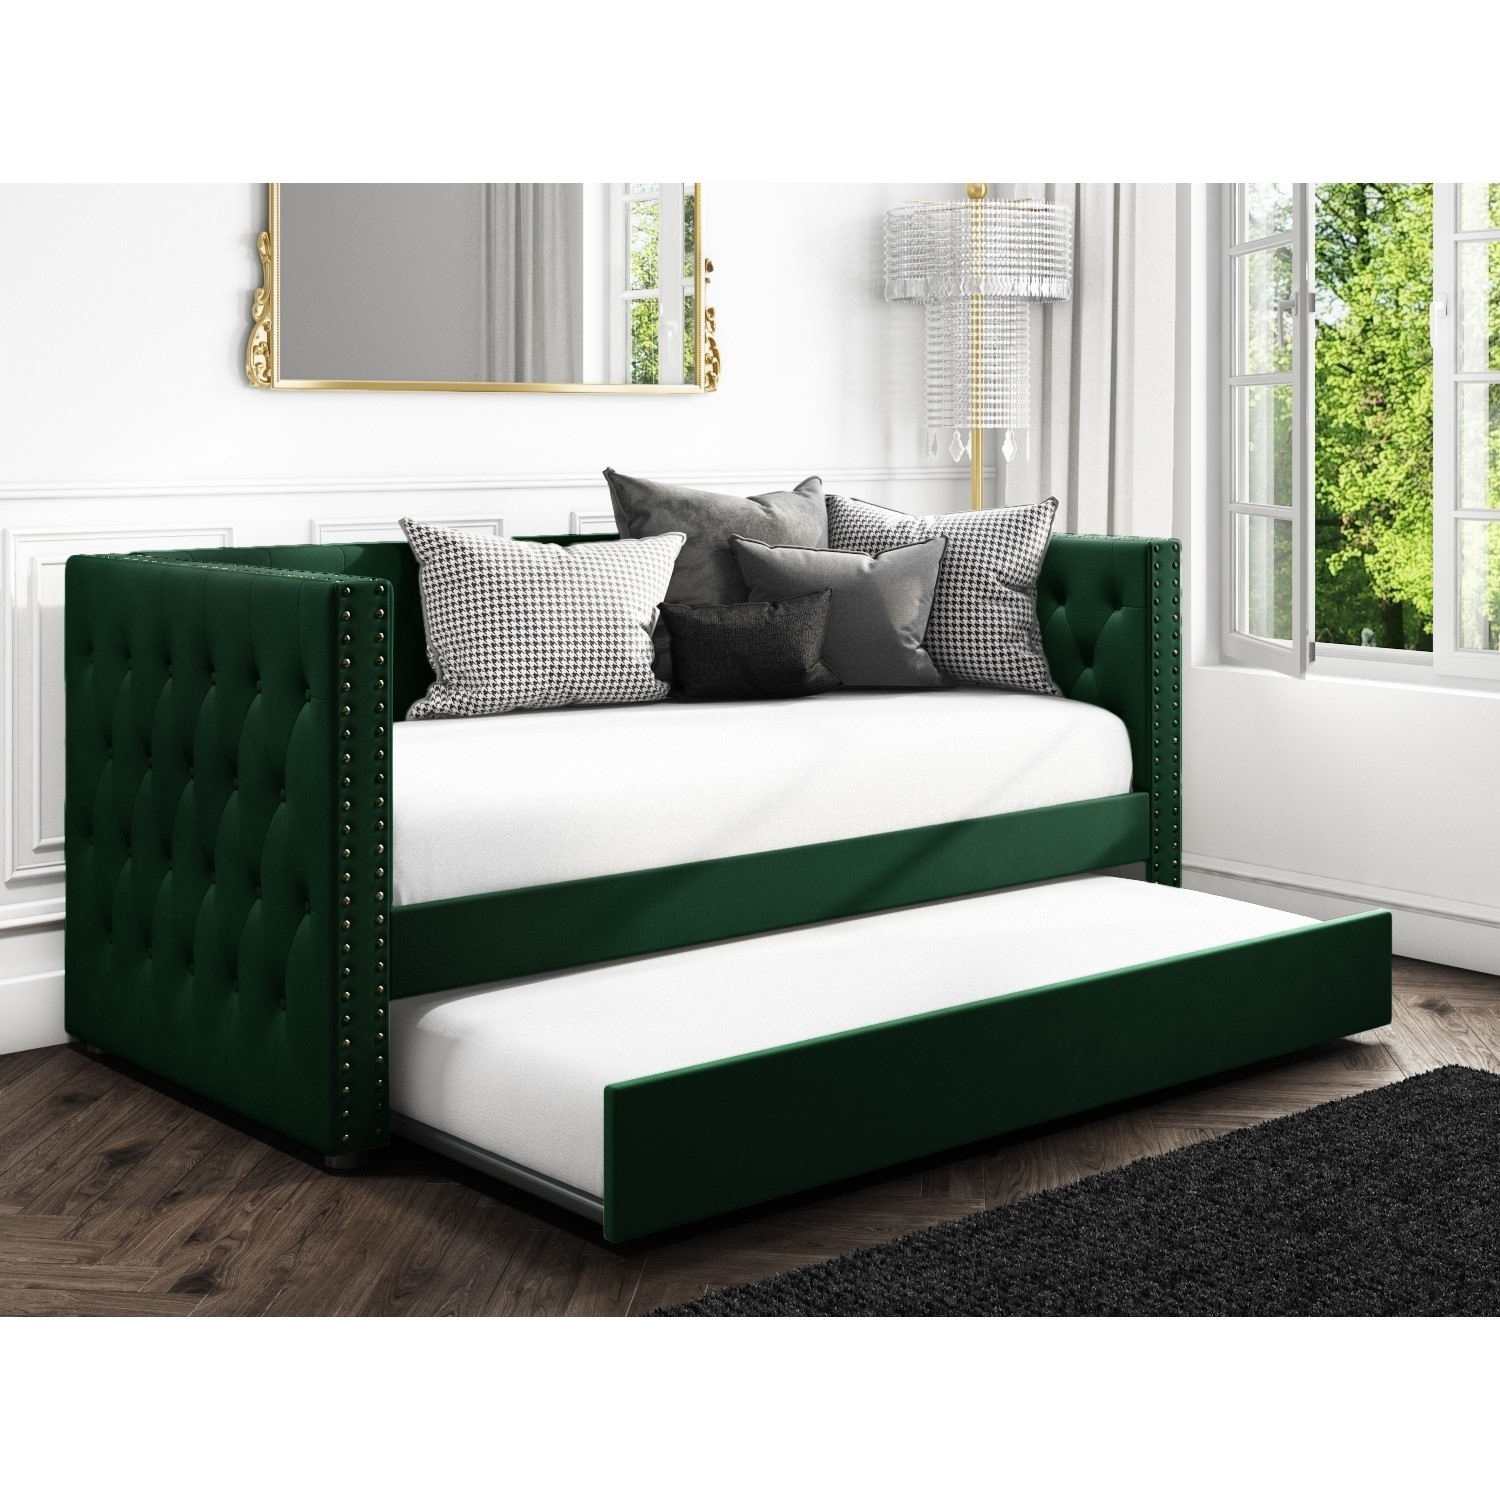 Phenomenal Sacha Velvet Sofa Bed In Bottle Green Trundle Bed Included Machost Co Dining Chair Design Ideas Machostcouk